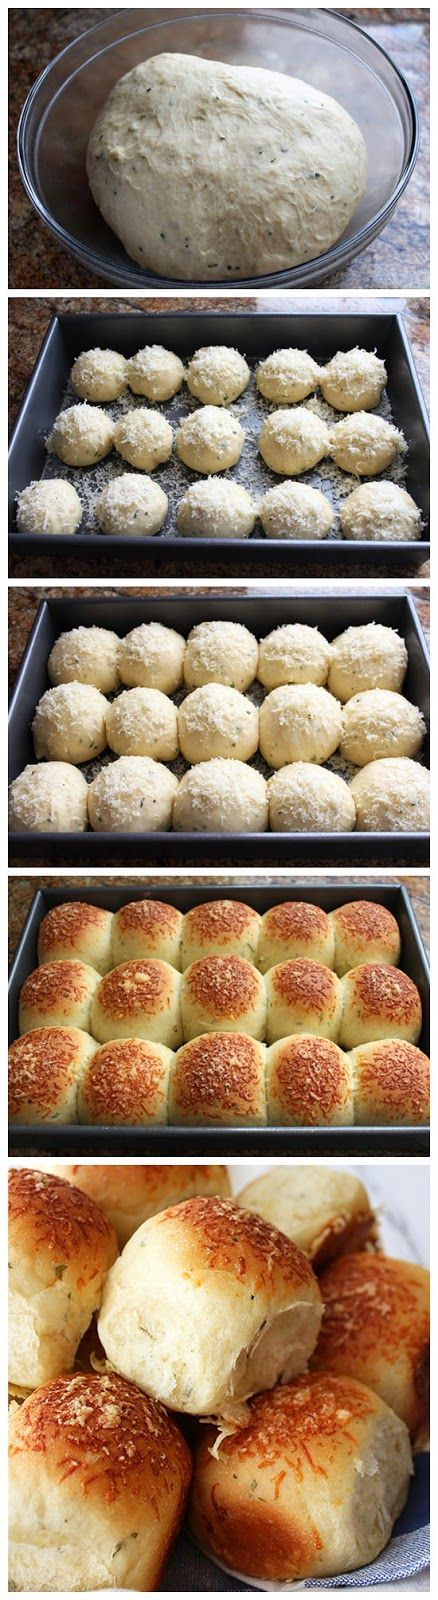 Garlic, Herb, and Cheese Bread Rolls - cookclouds